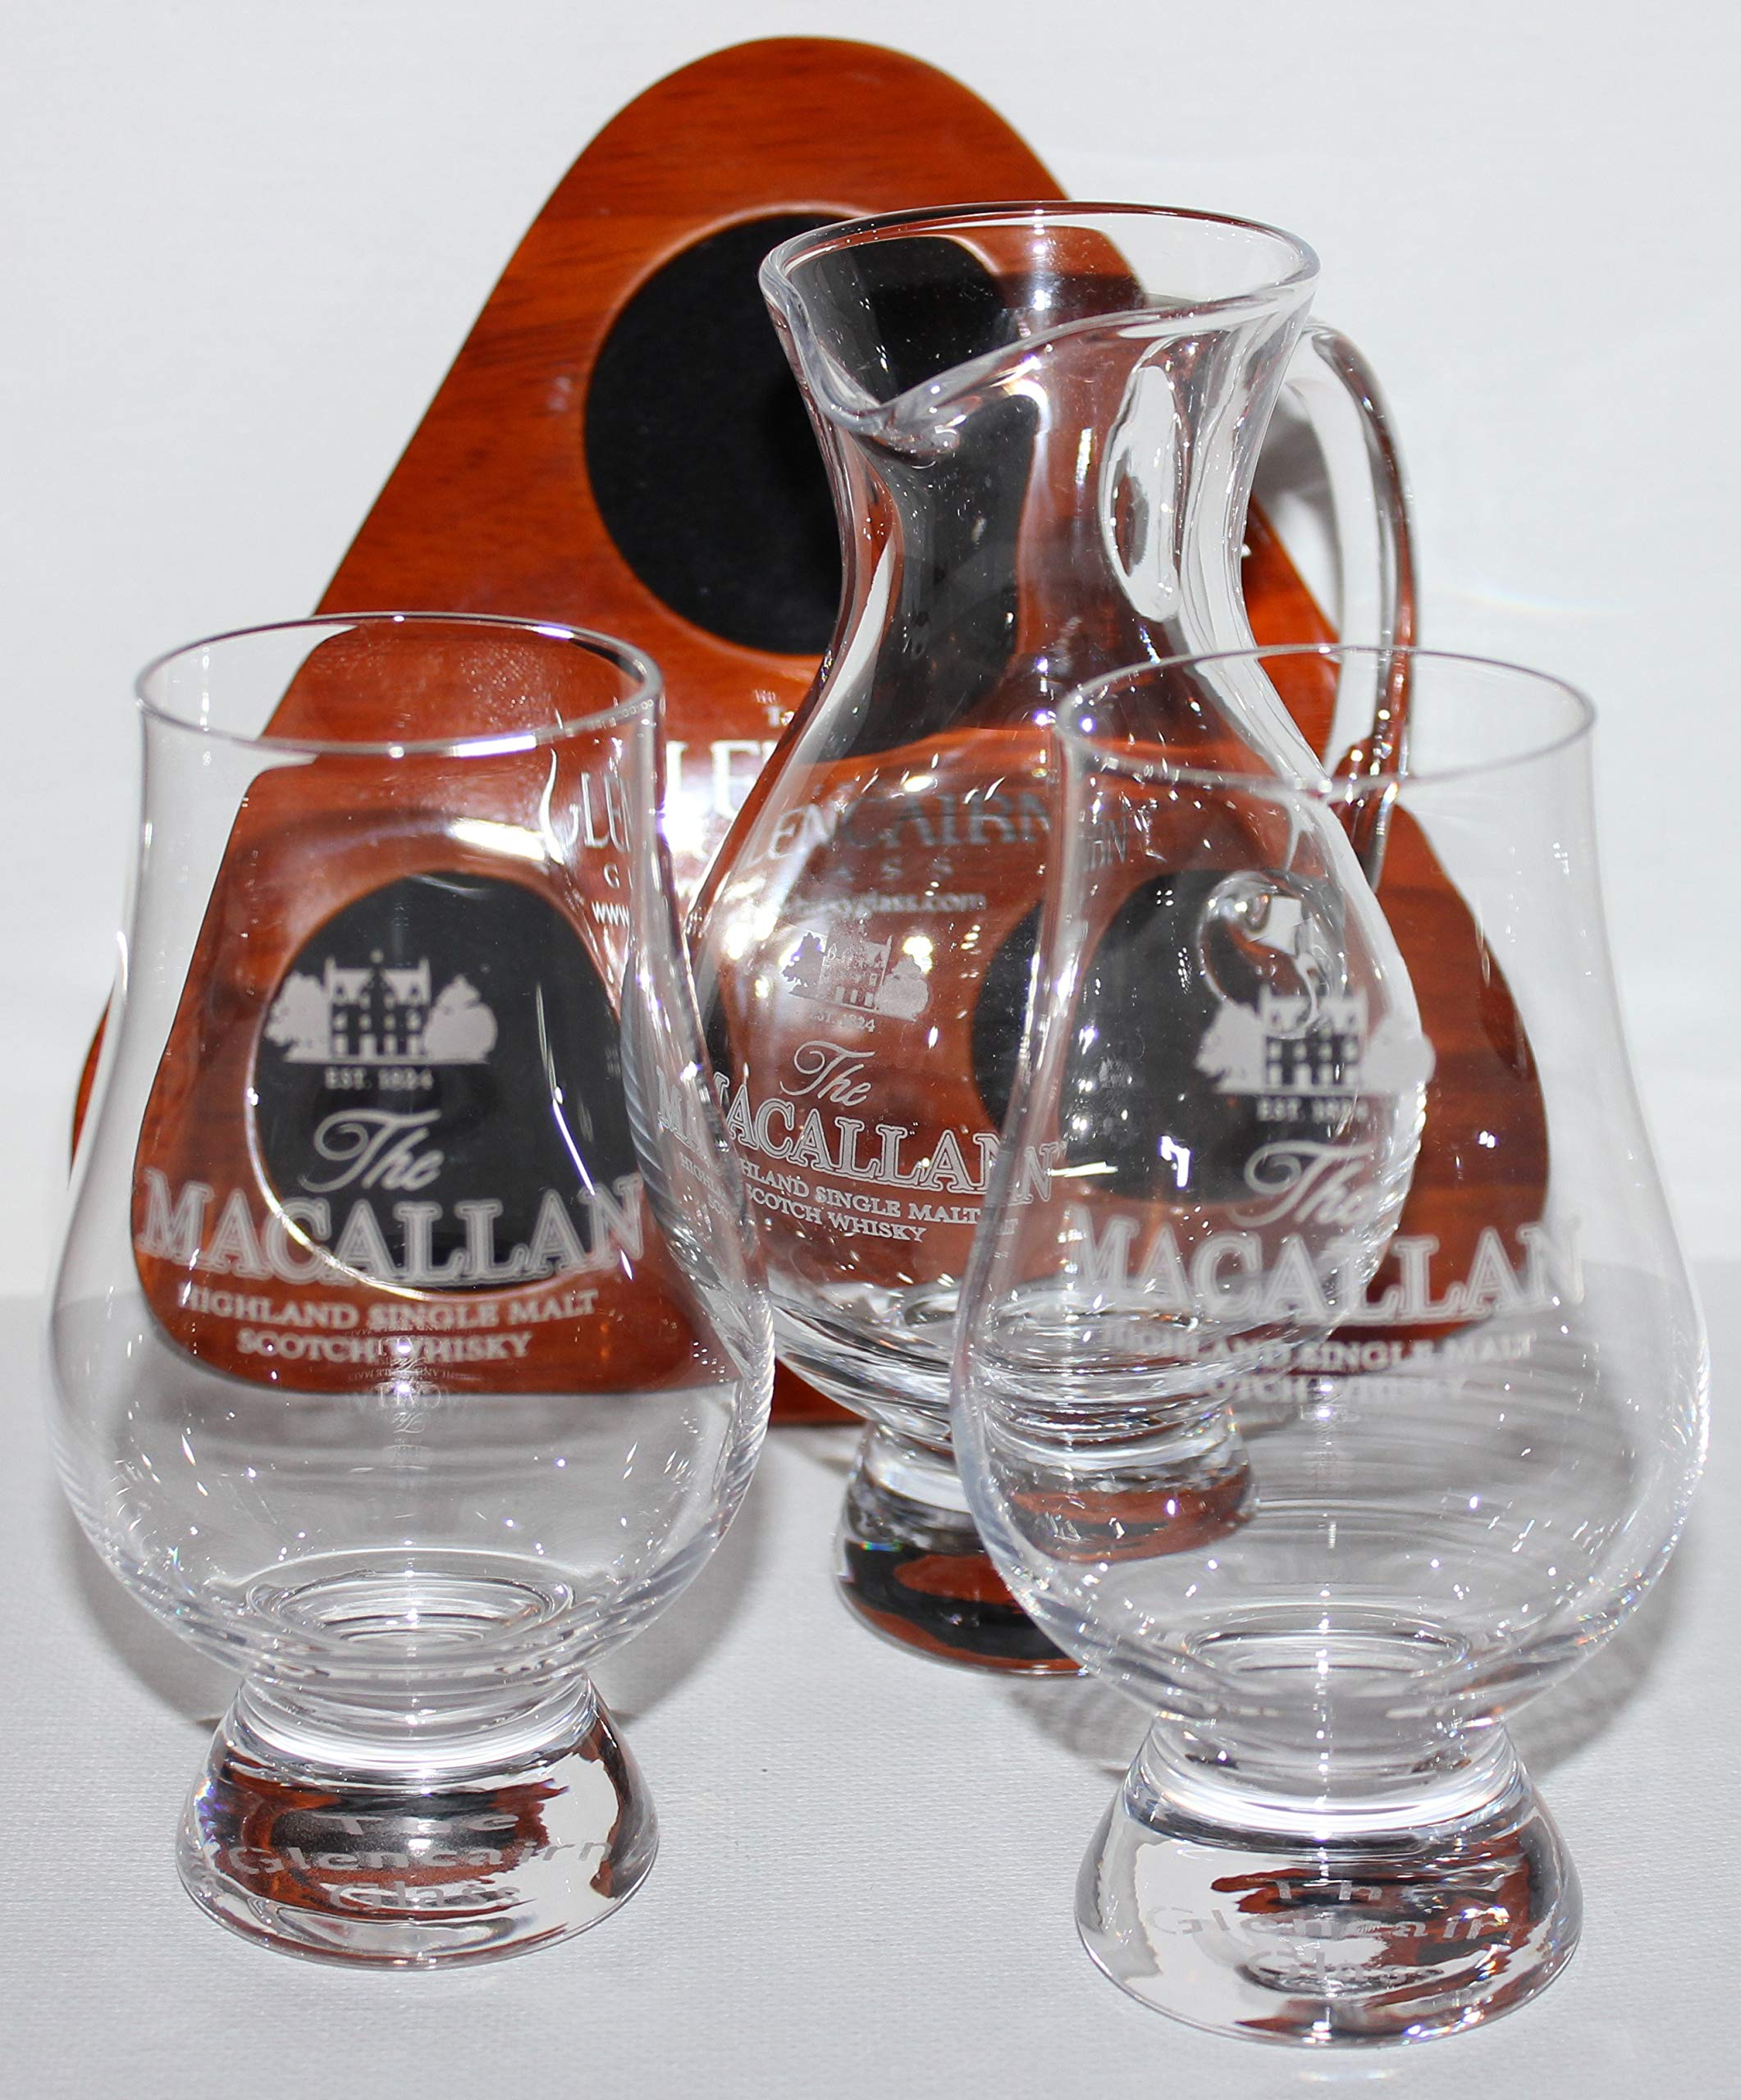 Macallan Glencairn Scotch Whisky Two Glass and Iona Water Pitcher Flight Tray Set by Glencairn (Image #1)